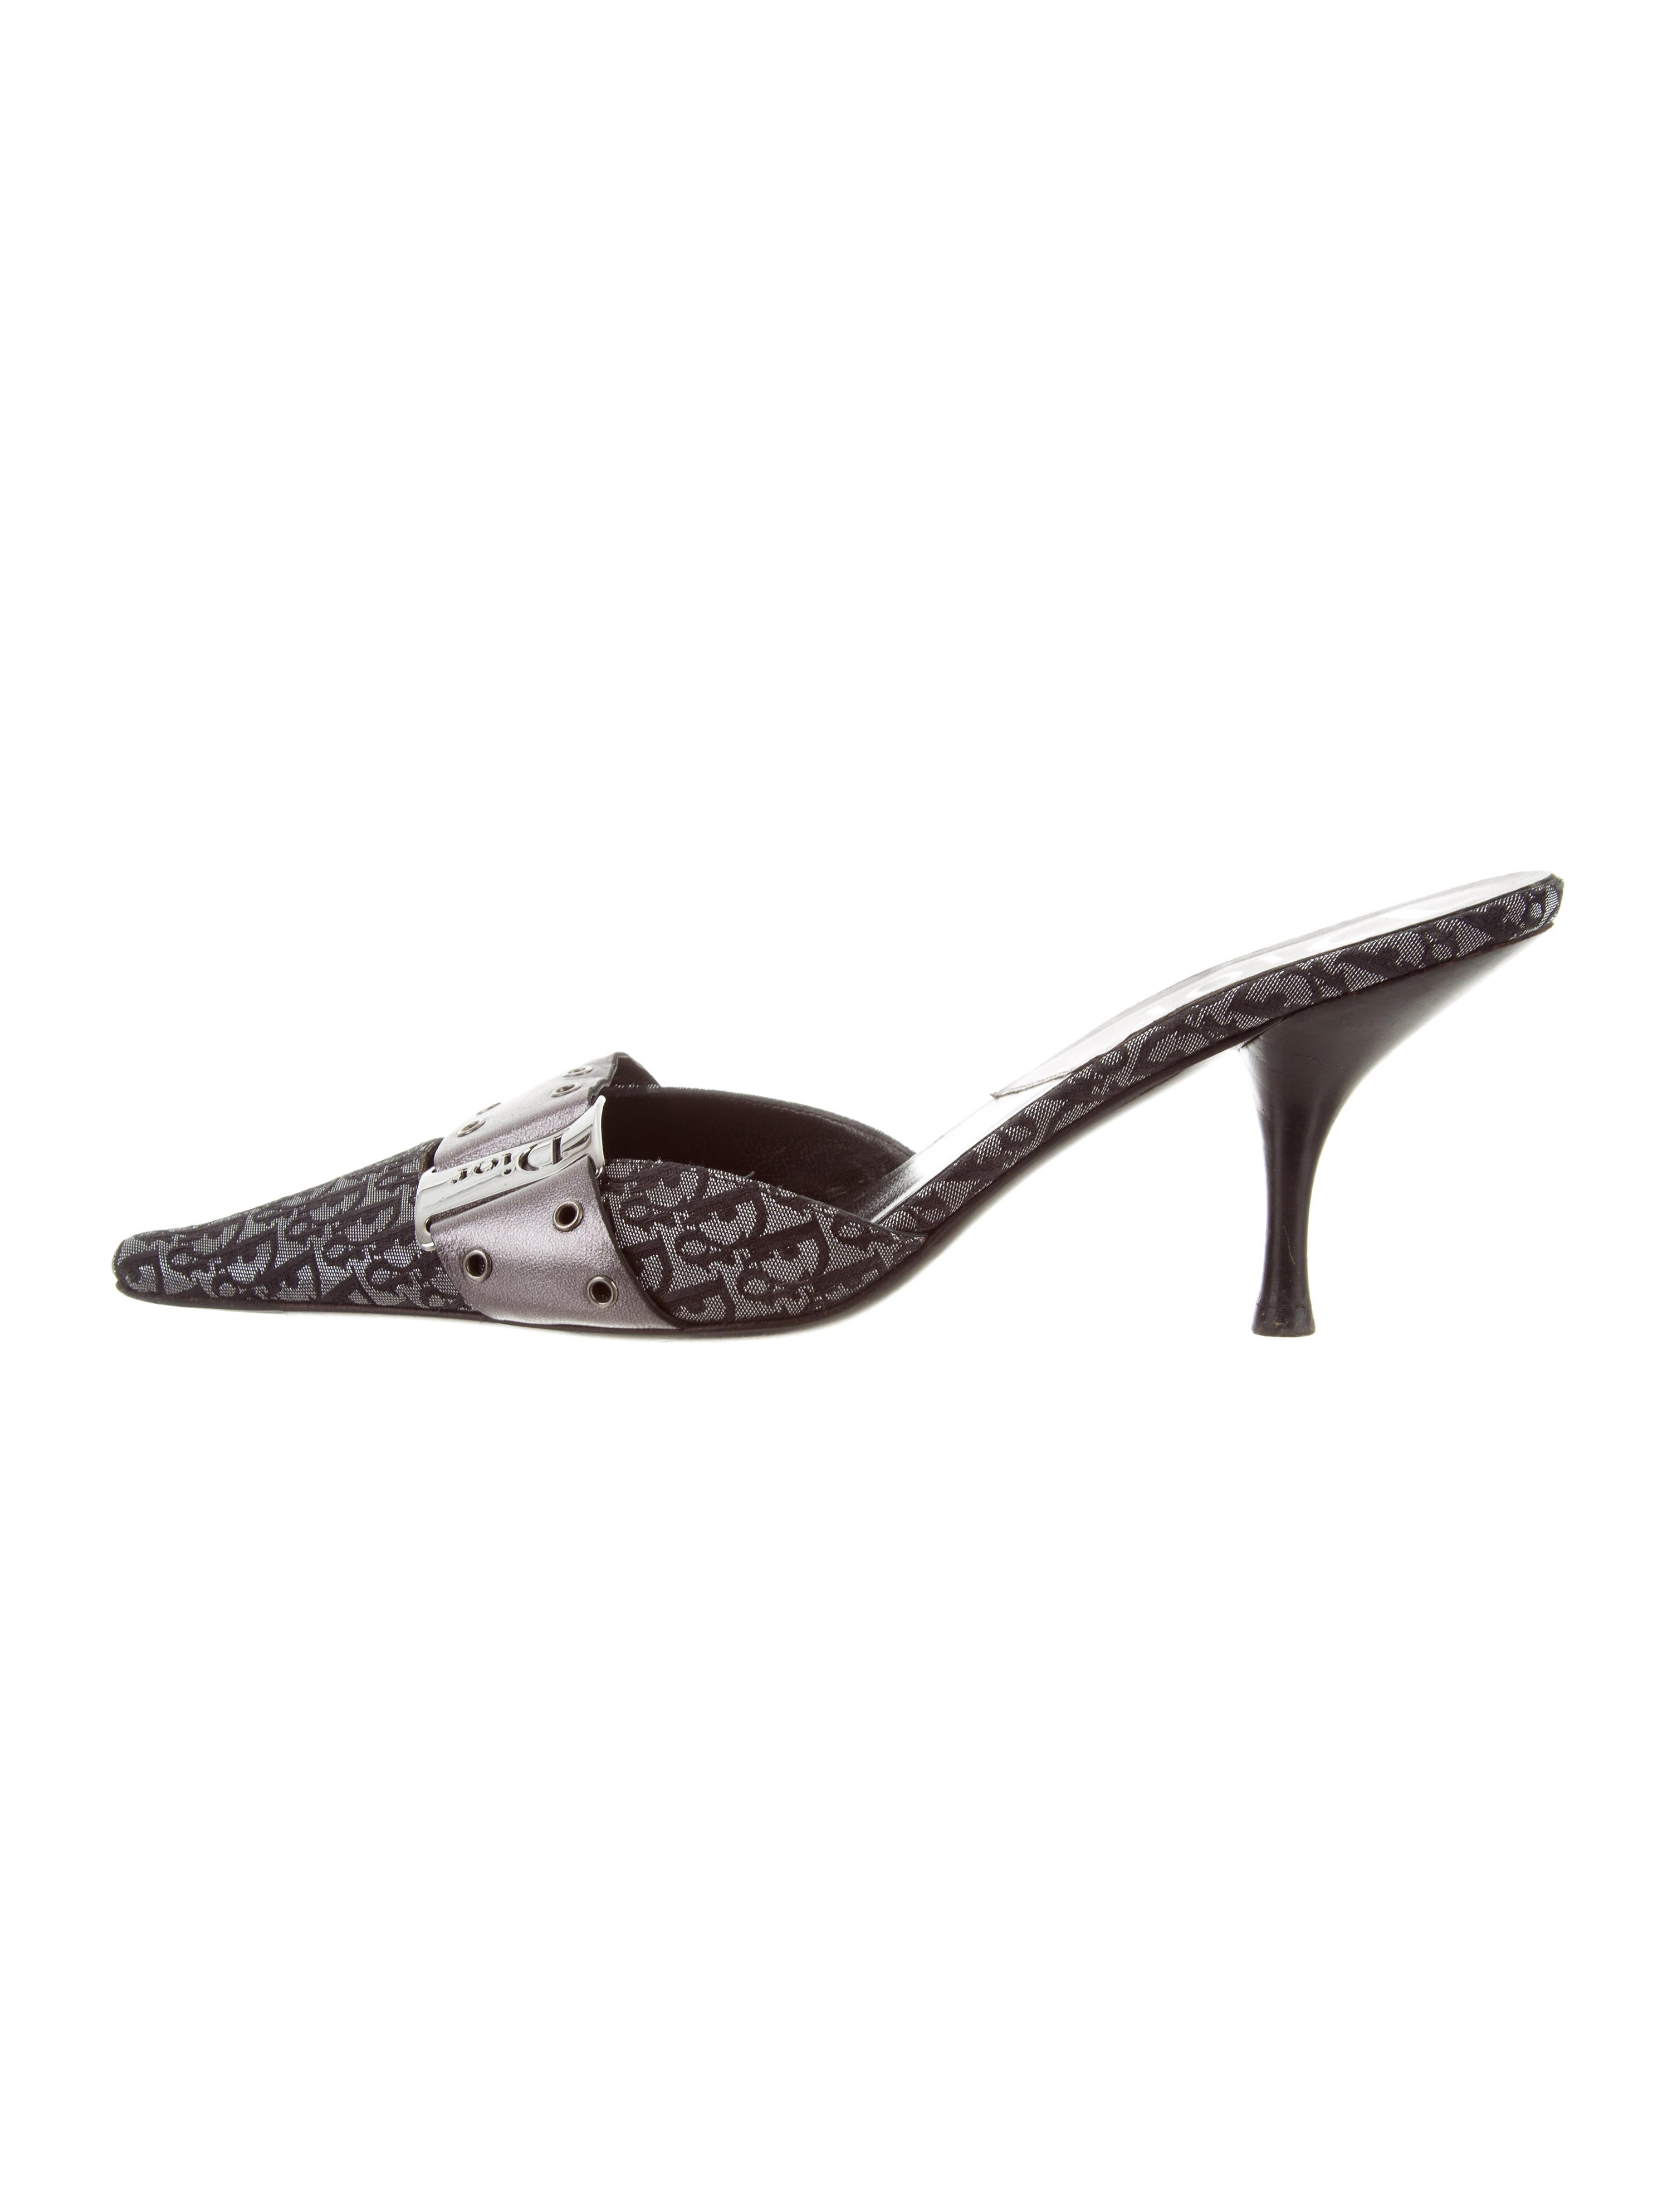 hot sale outlet clearance store Christian Dior Diorissimo Logo-Accented Mules discount for cheap wide range of for sale jsQdkLhK